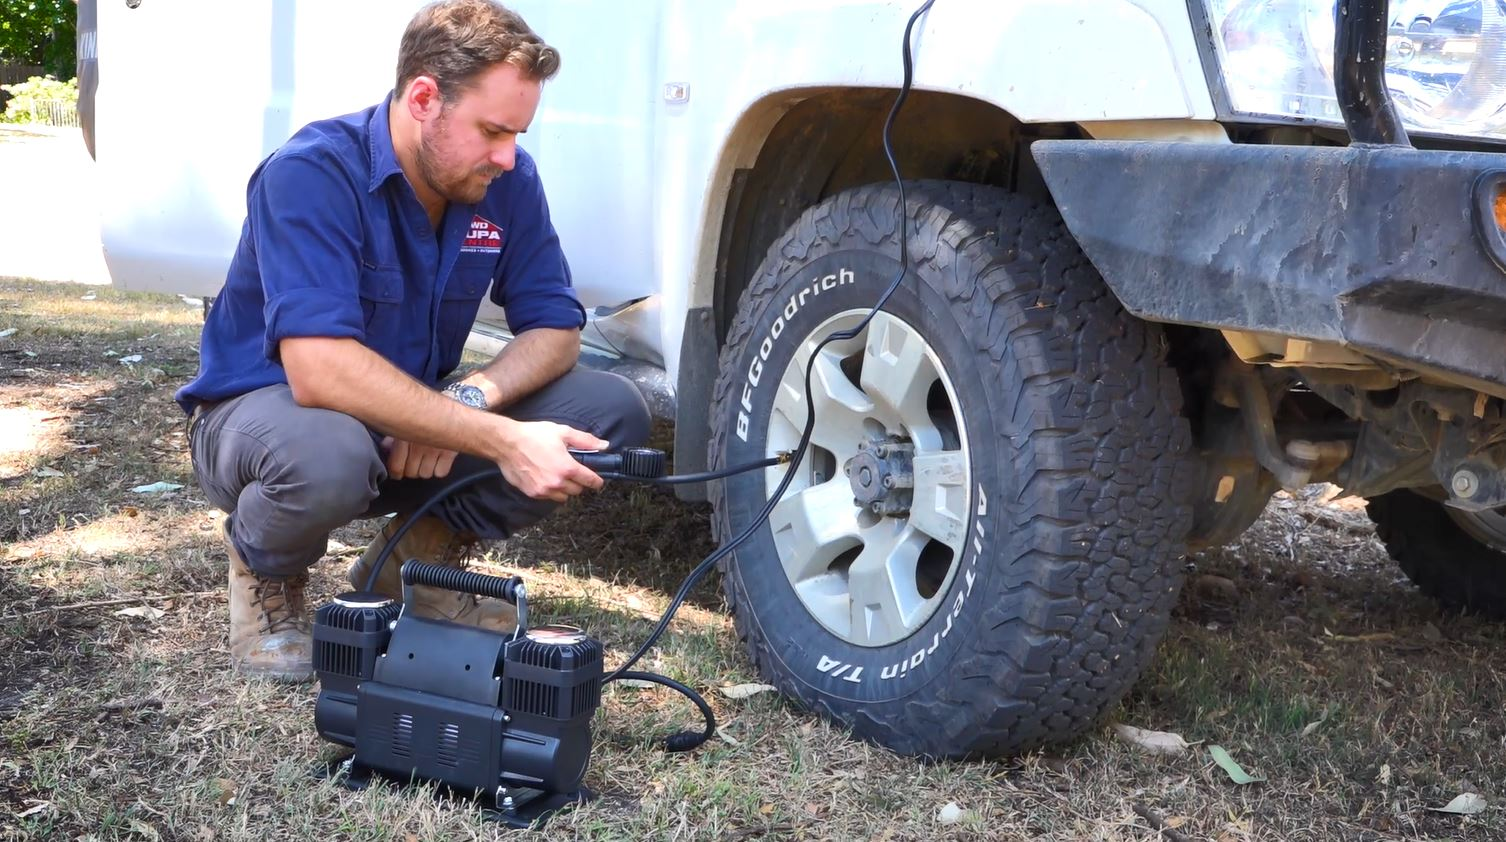 Thumper MKII  - A 4WDers Best Friend, on and off road! - image Capture-67 on https://www.4wdsupacentre.com.au/news